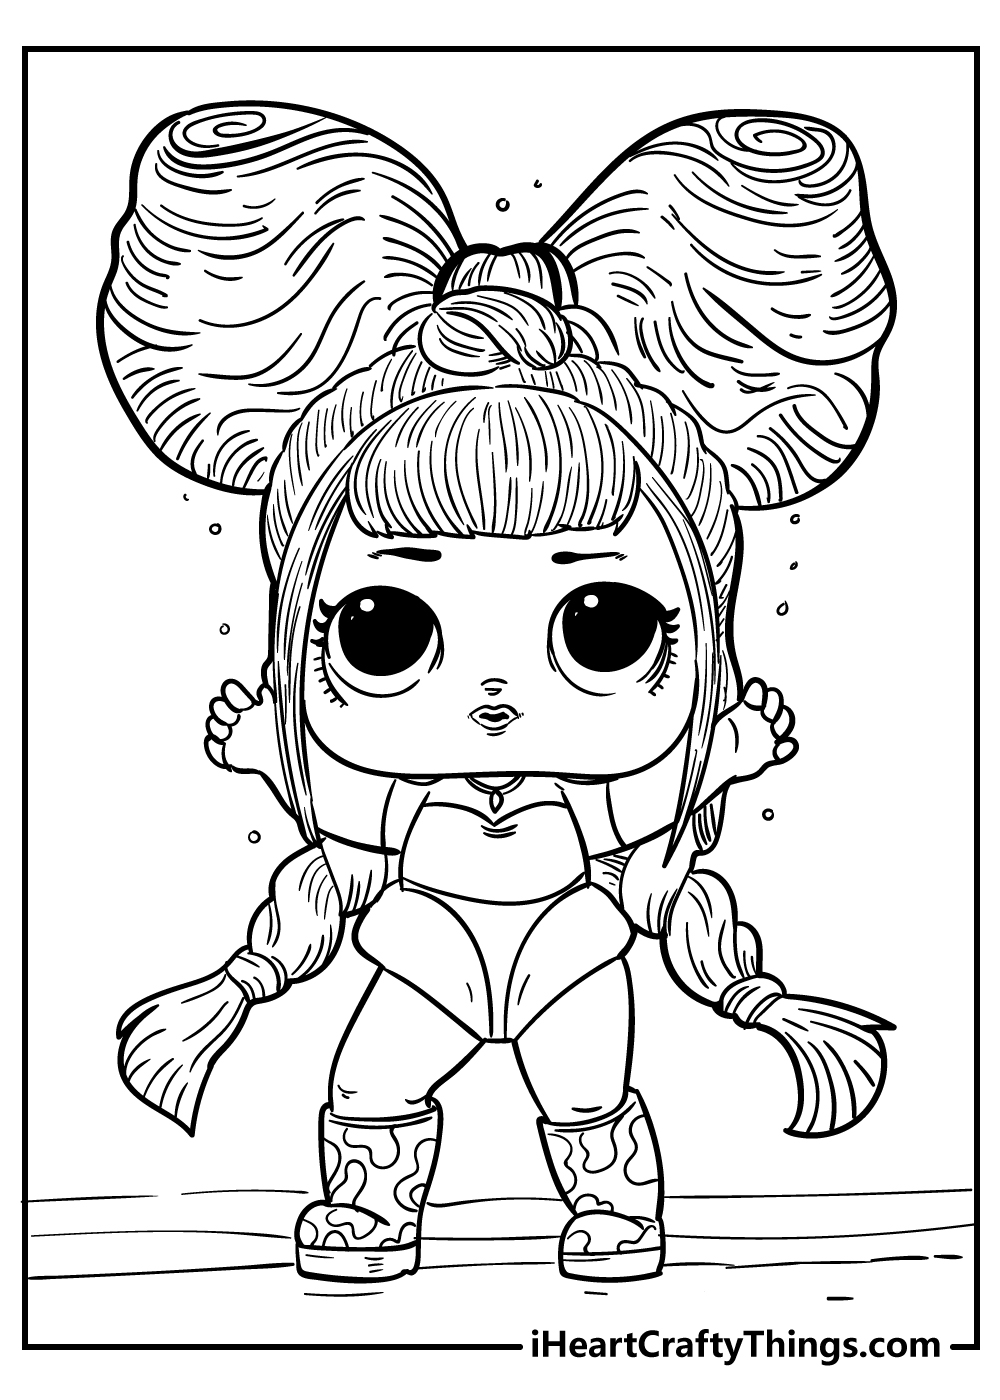 LOL doll coloring pages for kids free print out